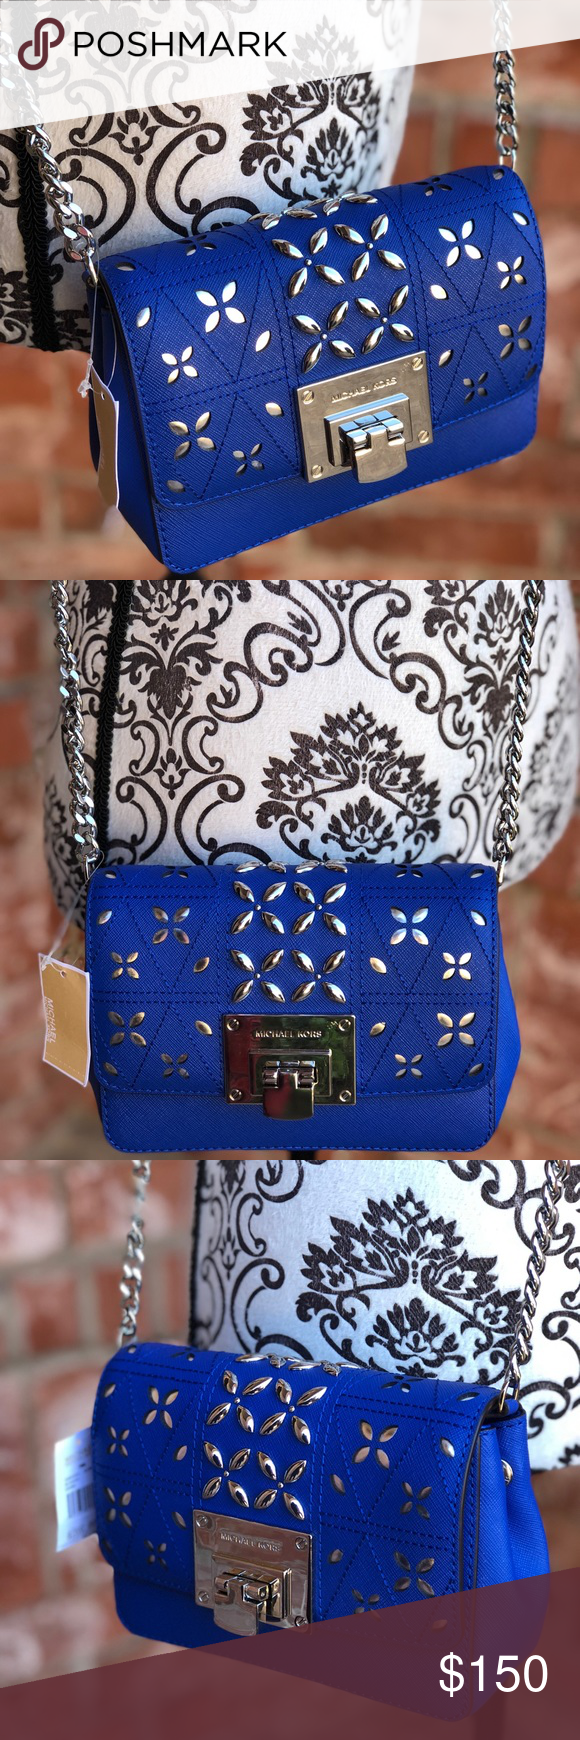 2aeb36a35 Michael kors Tina small clutch crossbody leather STYLE: 35S8ST4C5T Color:  Electric Blue Perforated Stud